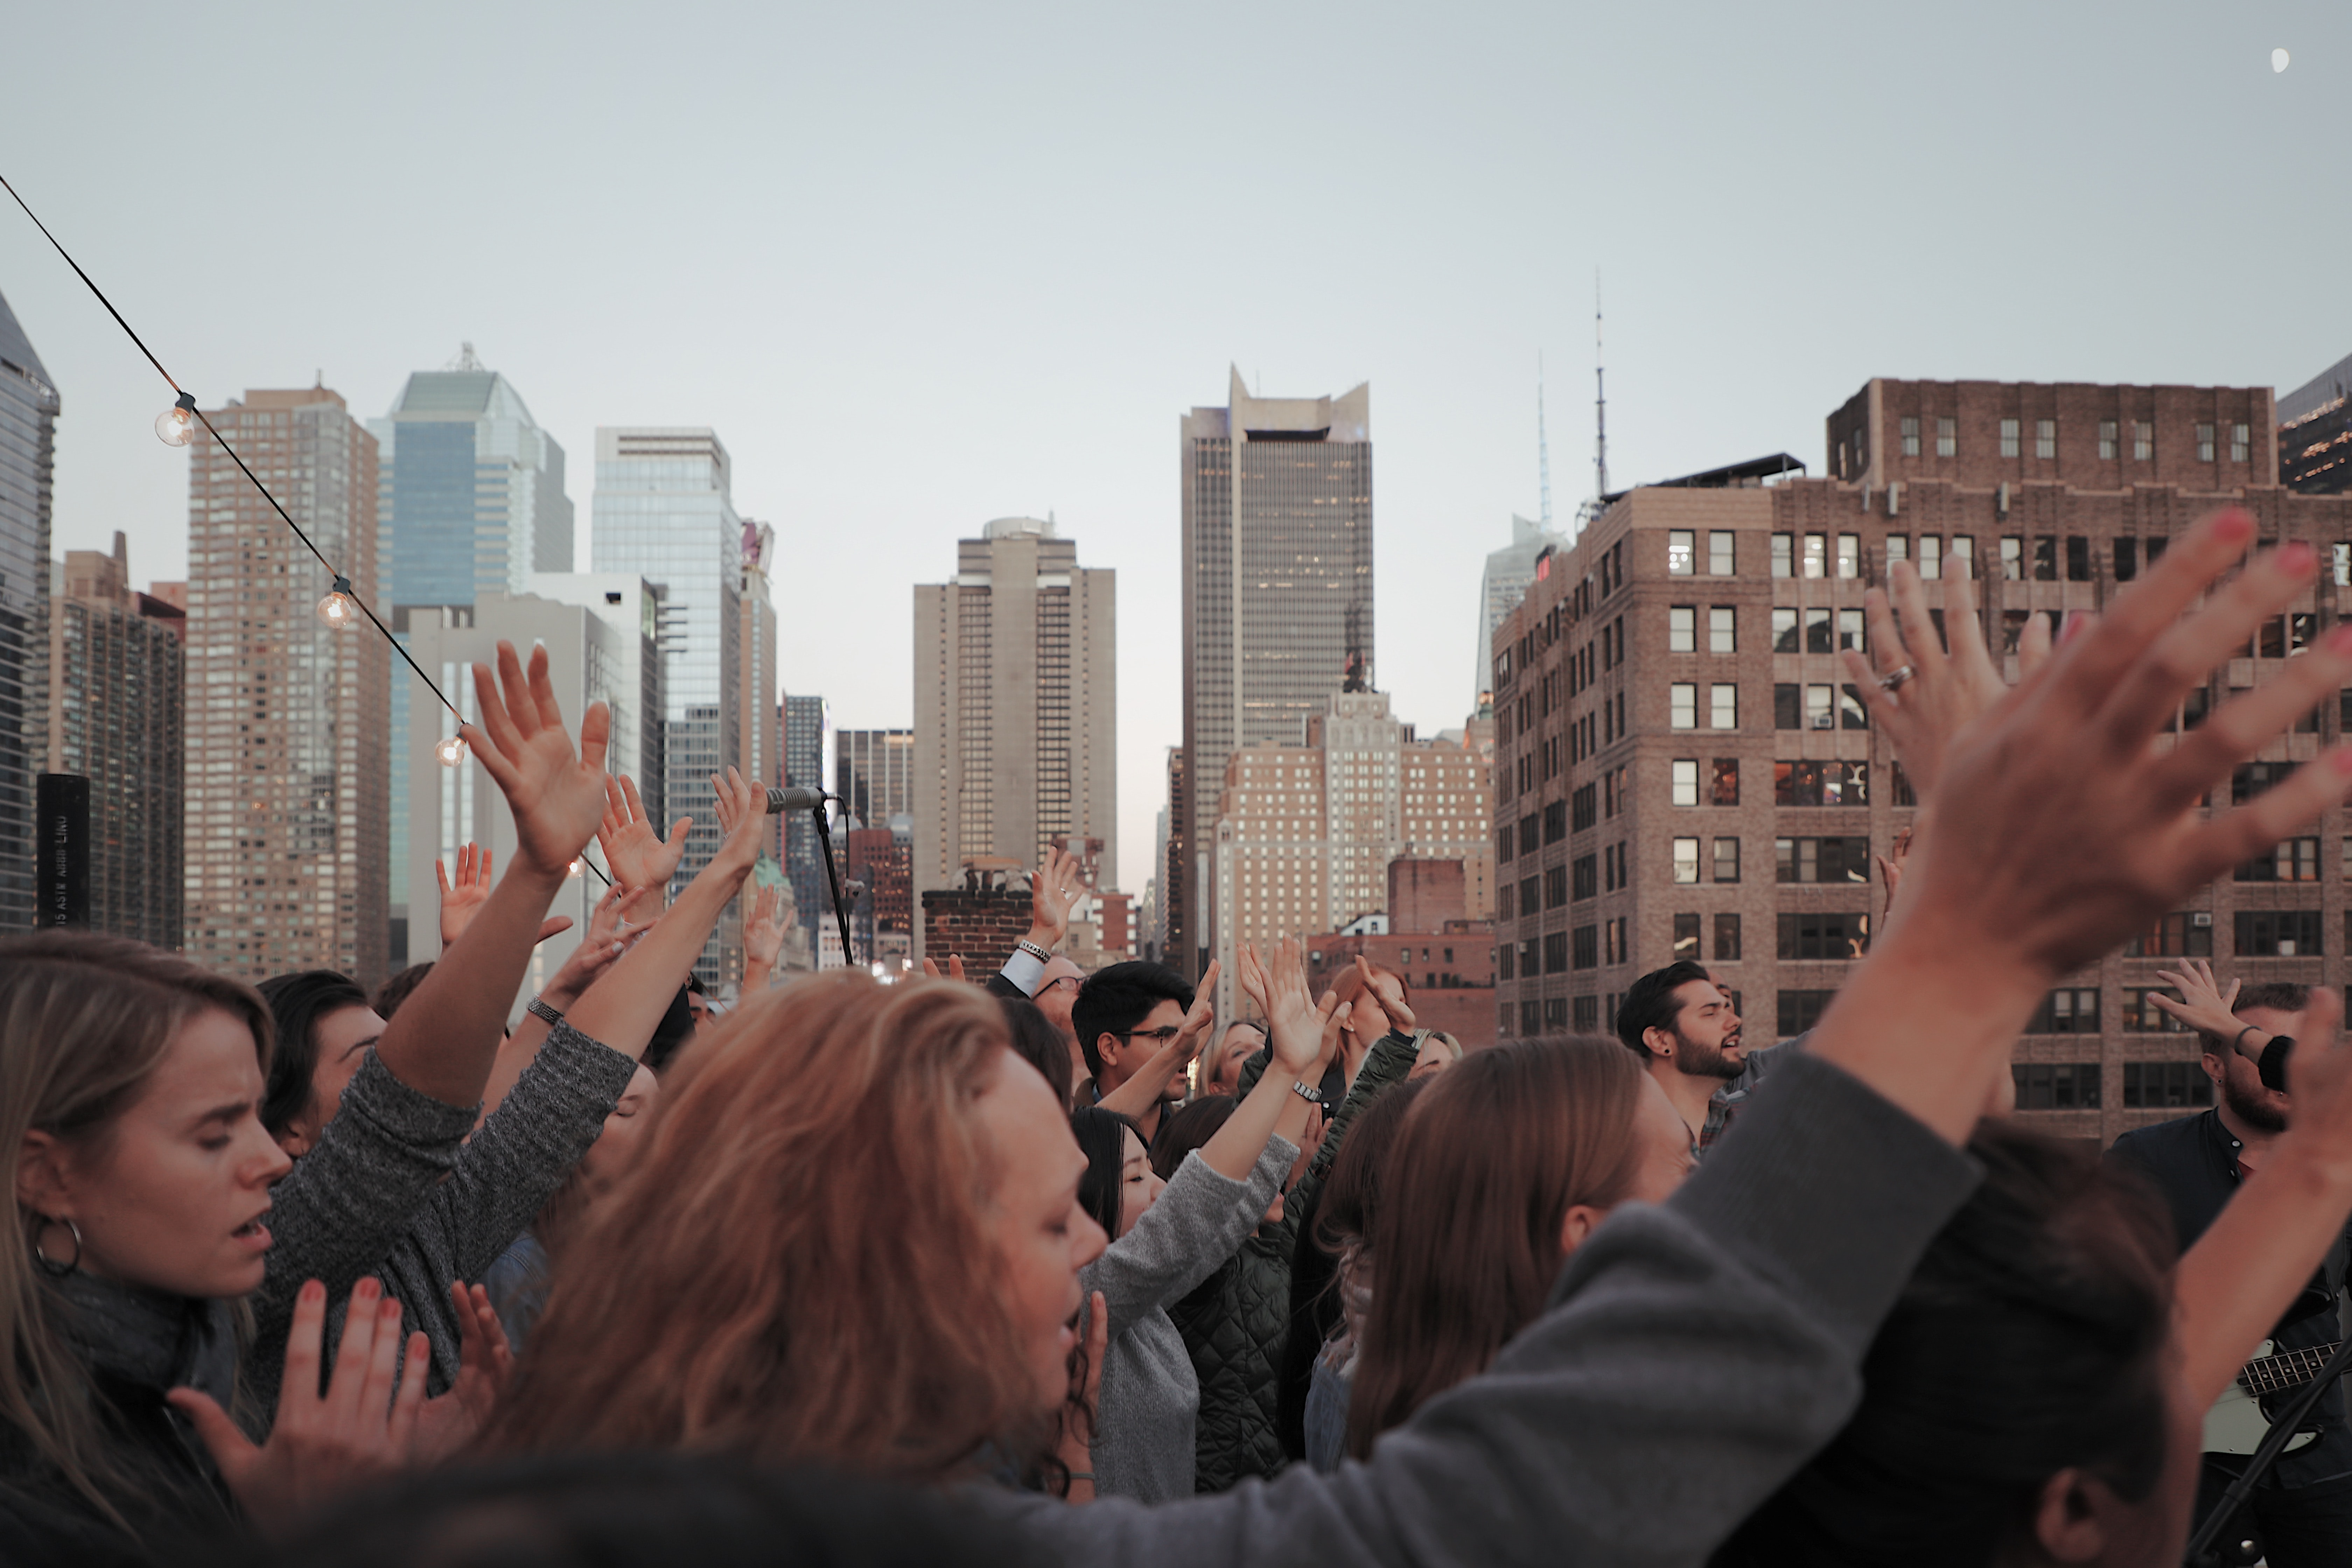 group of people waving their hands